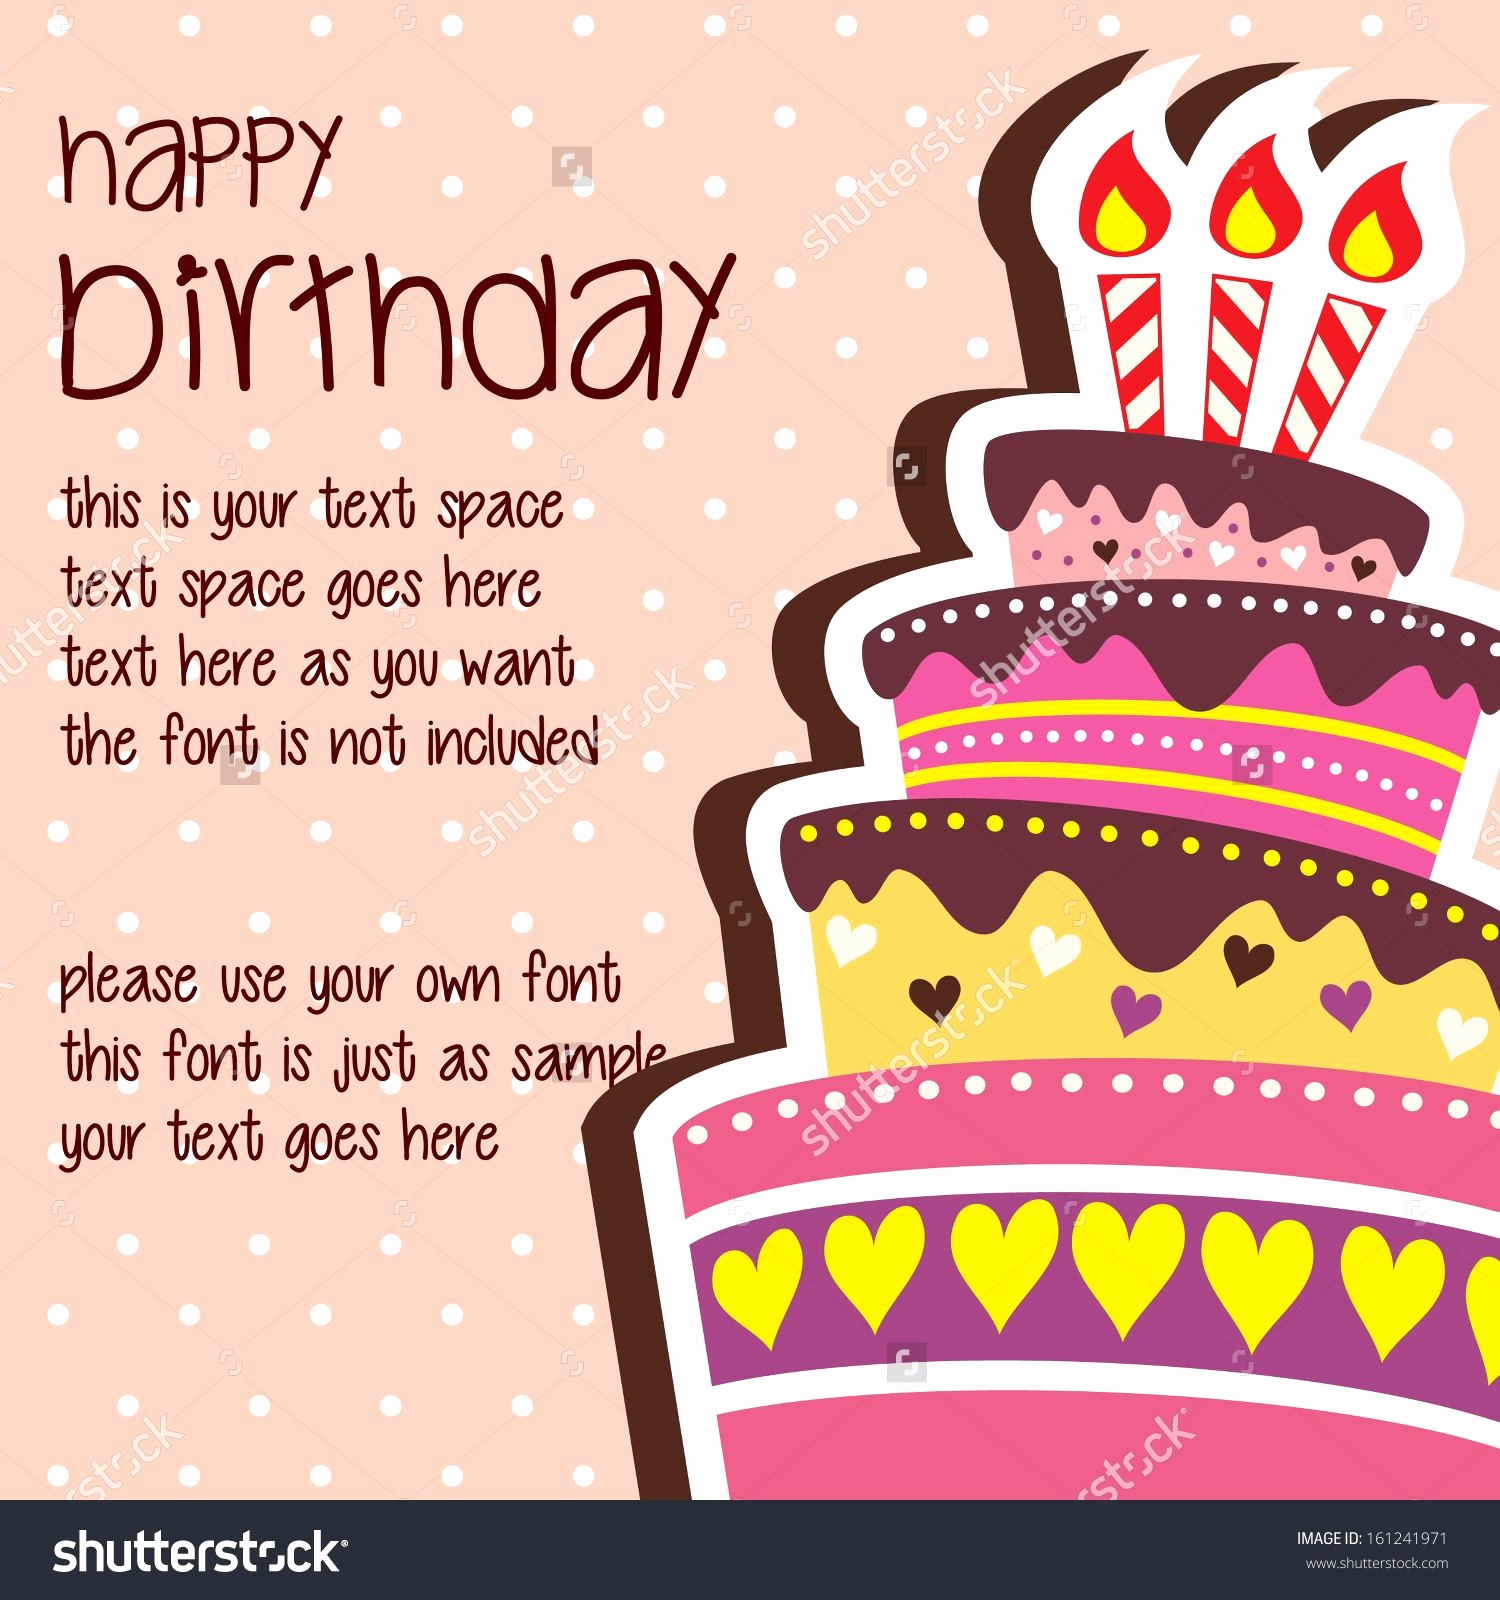 birthday card maker with name ; online-birthday-card-maker-with-name-best-of-40-elegant-birthday-card-maker-of-online-birthday-card-maker-with-name